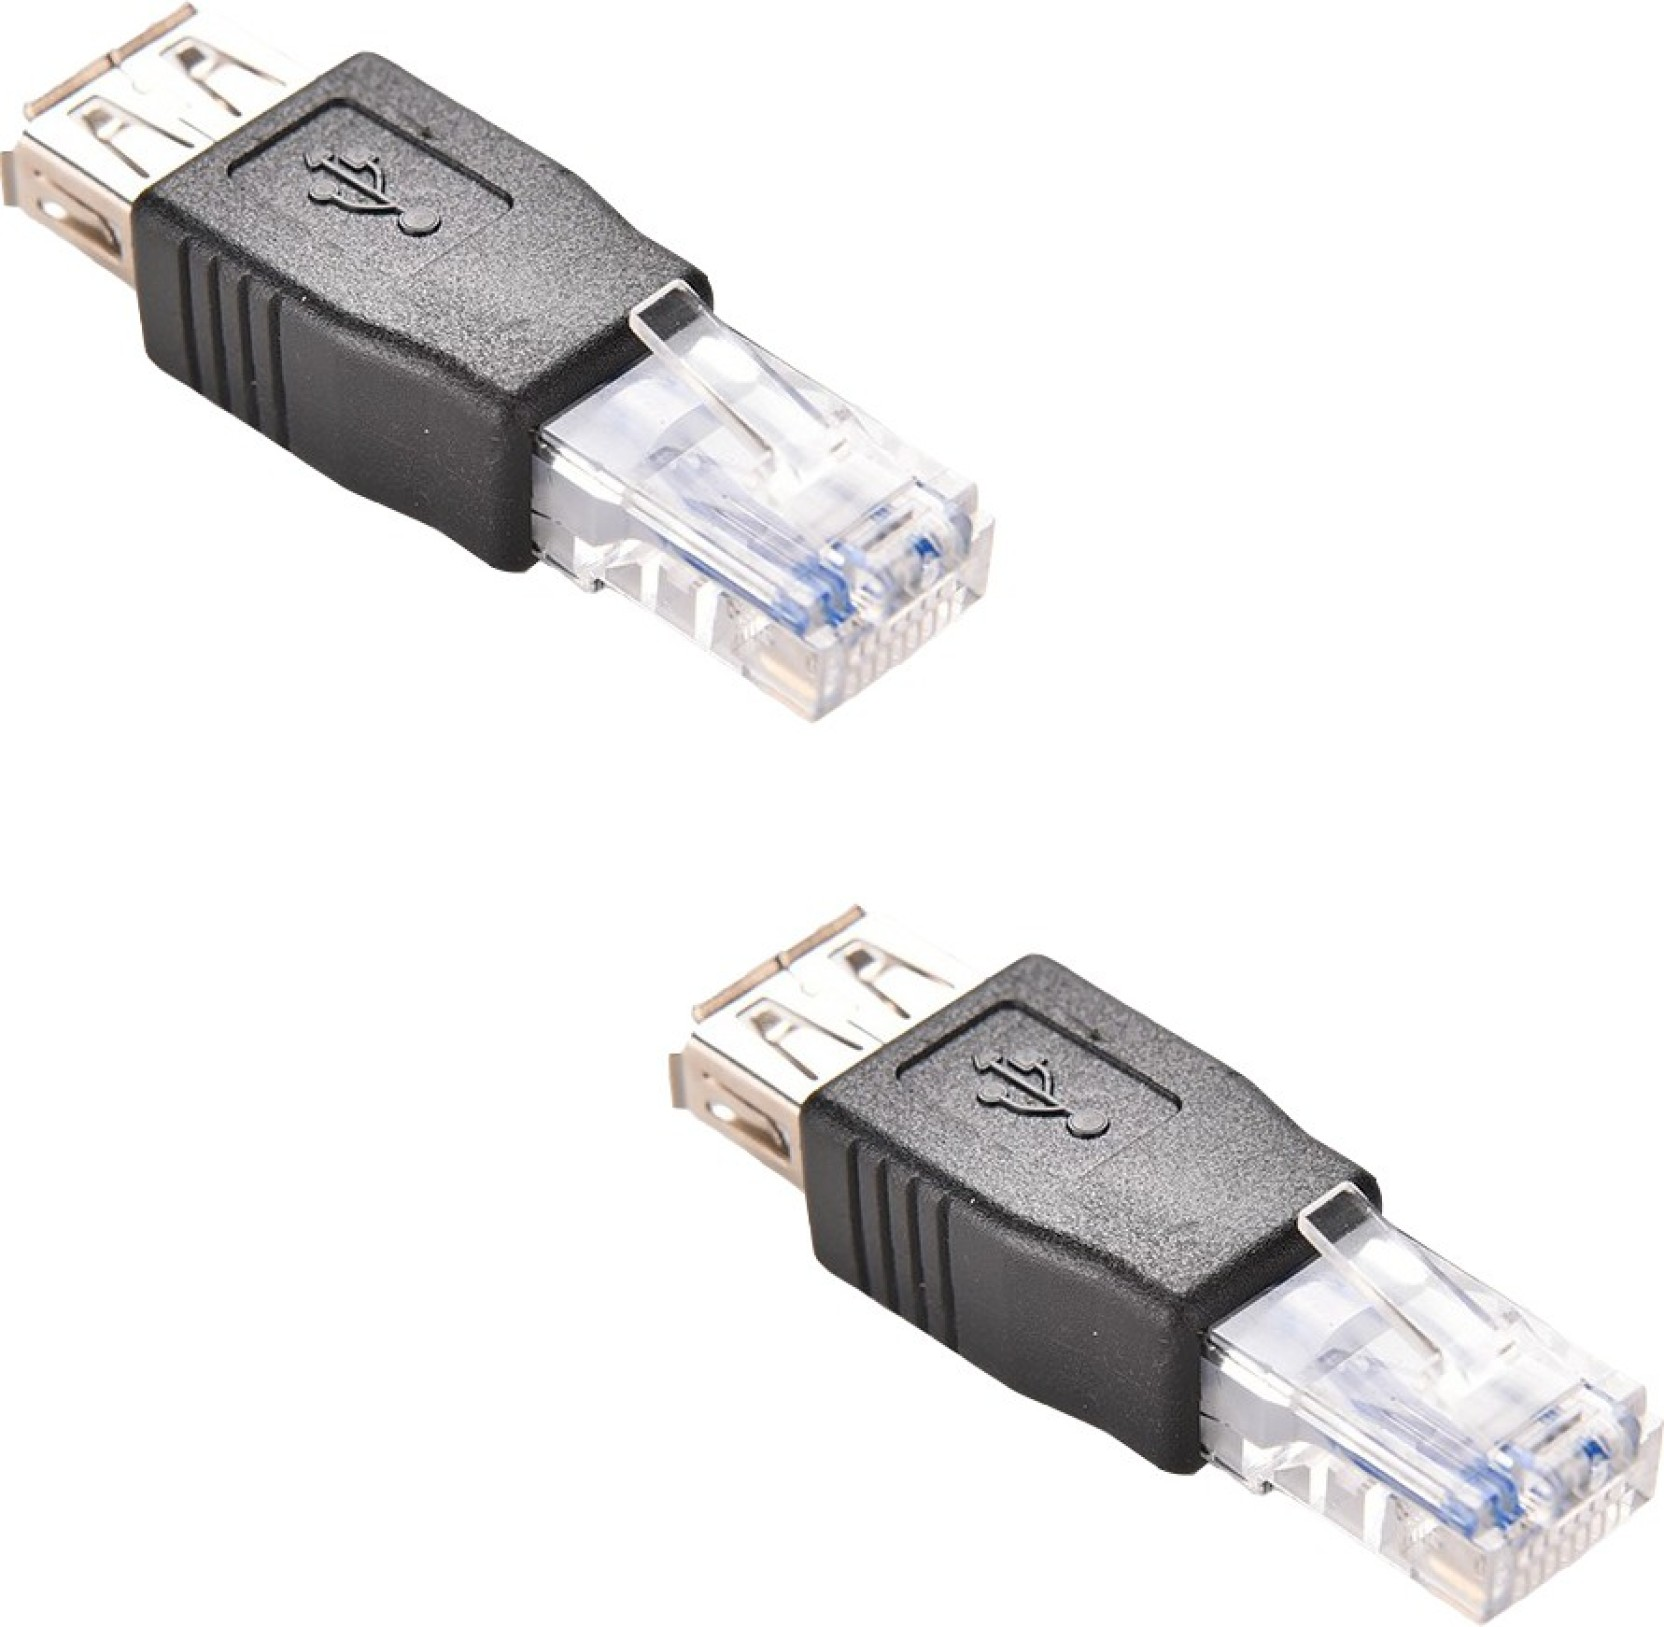 Acutas Rj45 Male To Usb 20 Af A Female Adapter Connector Laptop Lan House Wiring Ethernet Add Cart